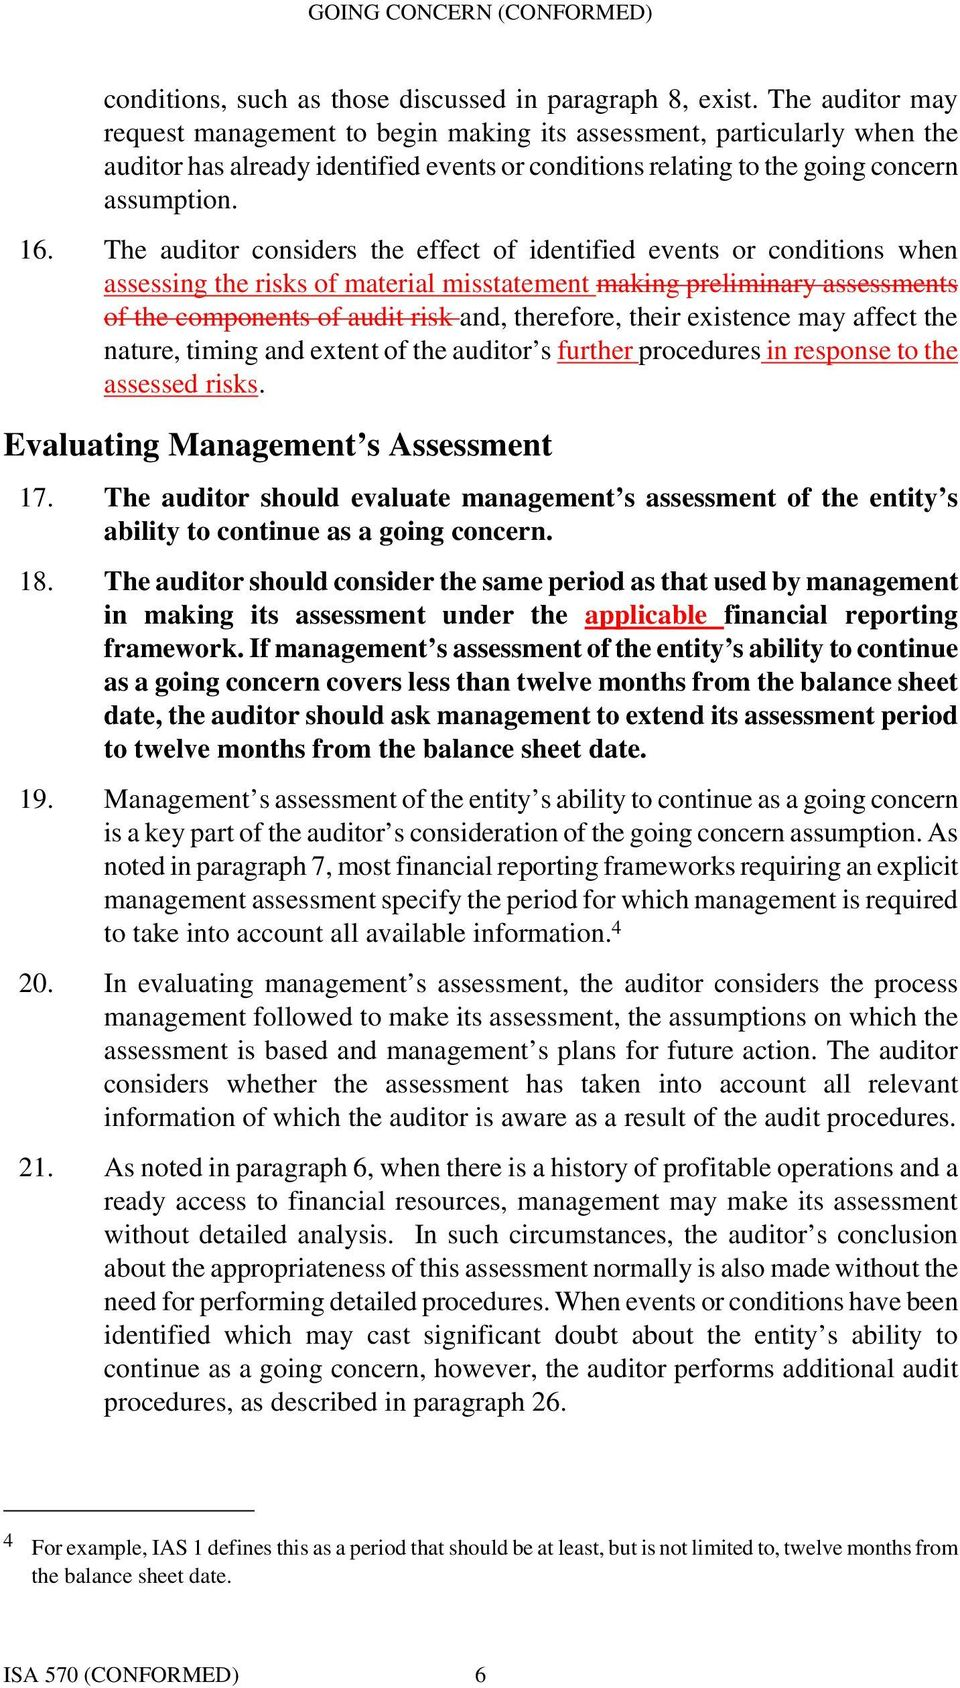 The auditor considers the effect of identified events or conditions when assessing the risks of material misstatement making preliminary assessments of the components of audit risk and, therefore,